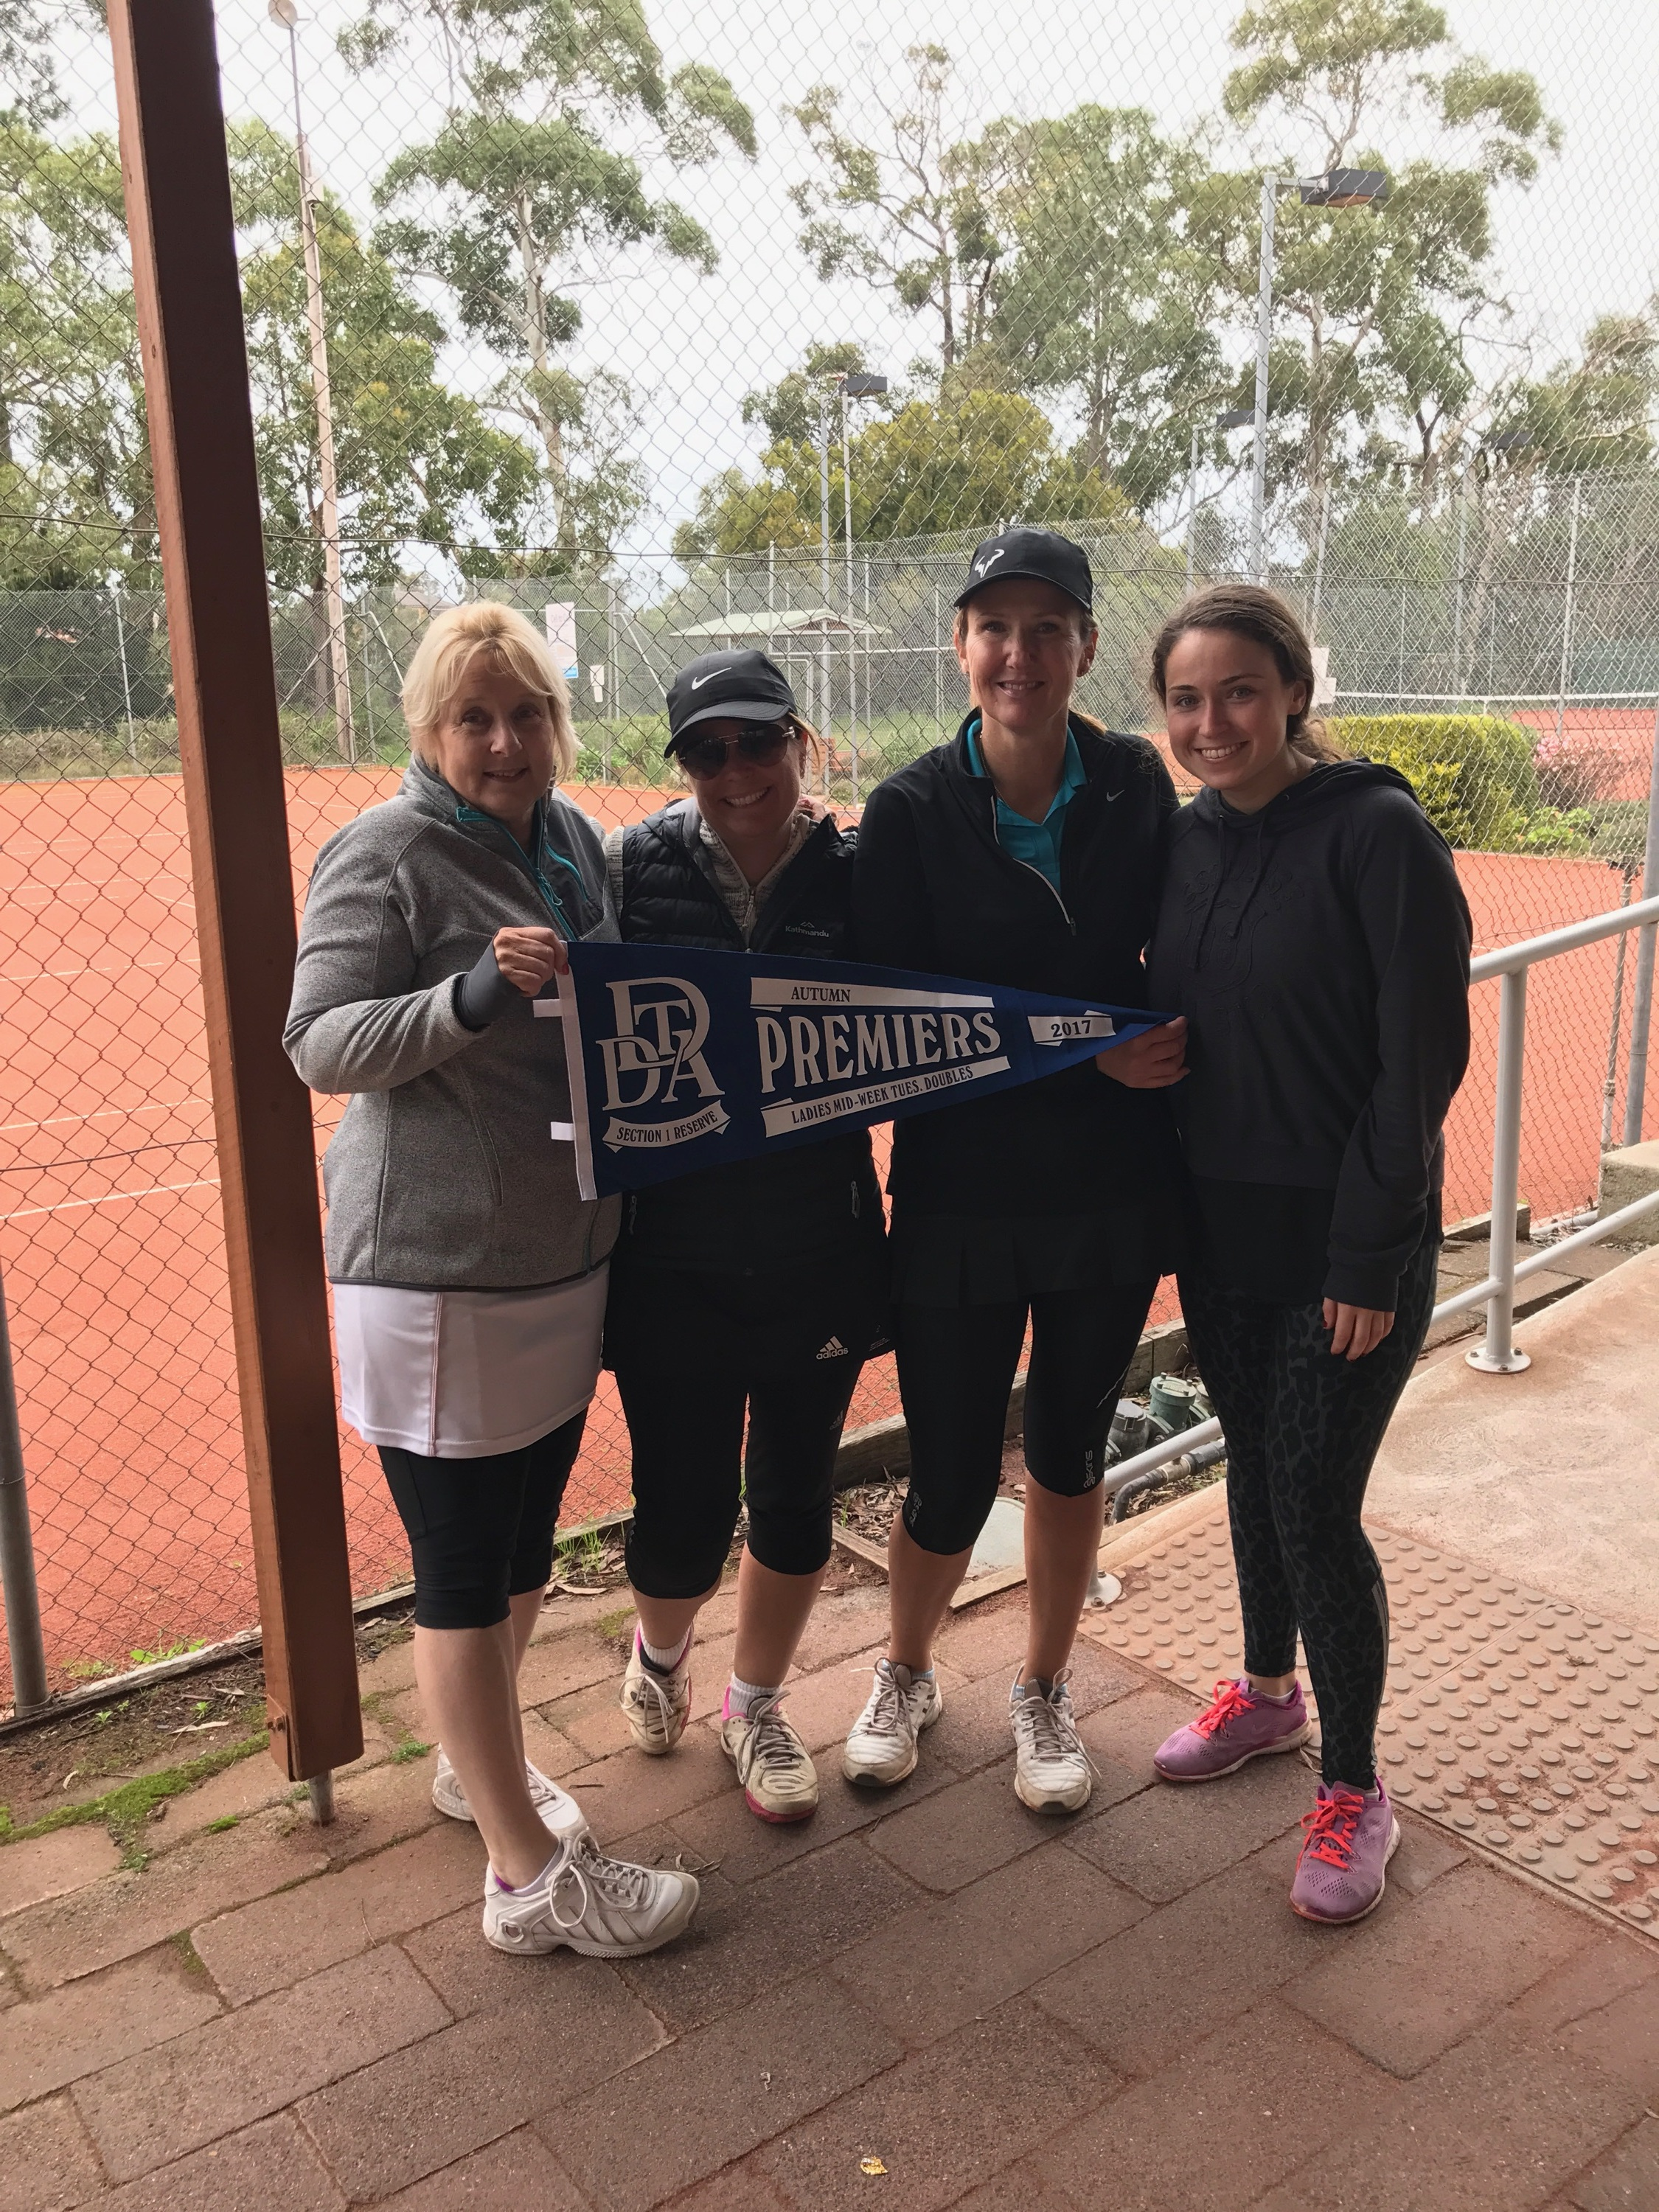 DDTA Tuesday Section 1 Premiers - Autumn 2017  Robyn Noone, Jodie Radings, Trish Devine, Molly Delaney (Absent - Caryn Greene)  Congratulations ladies.